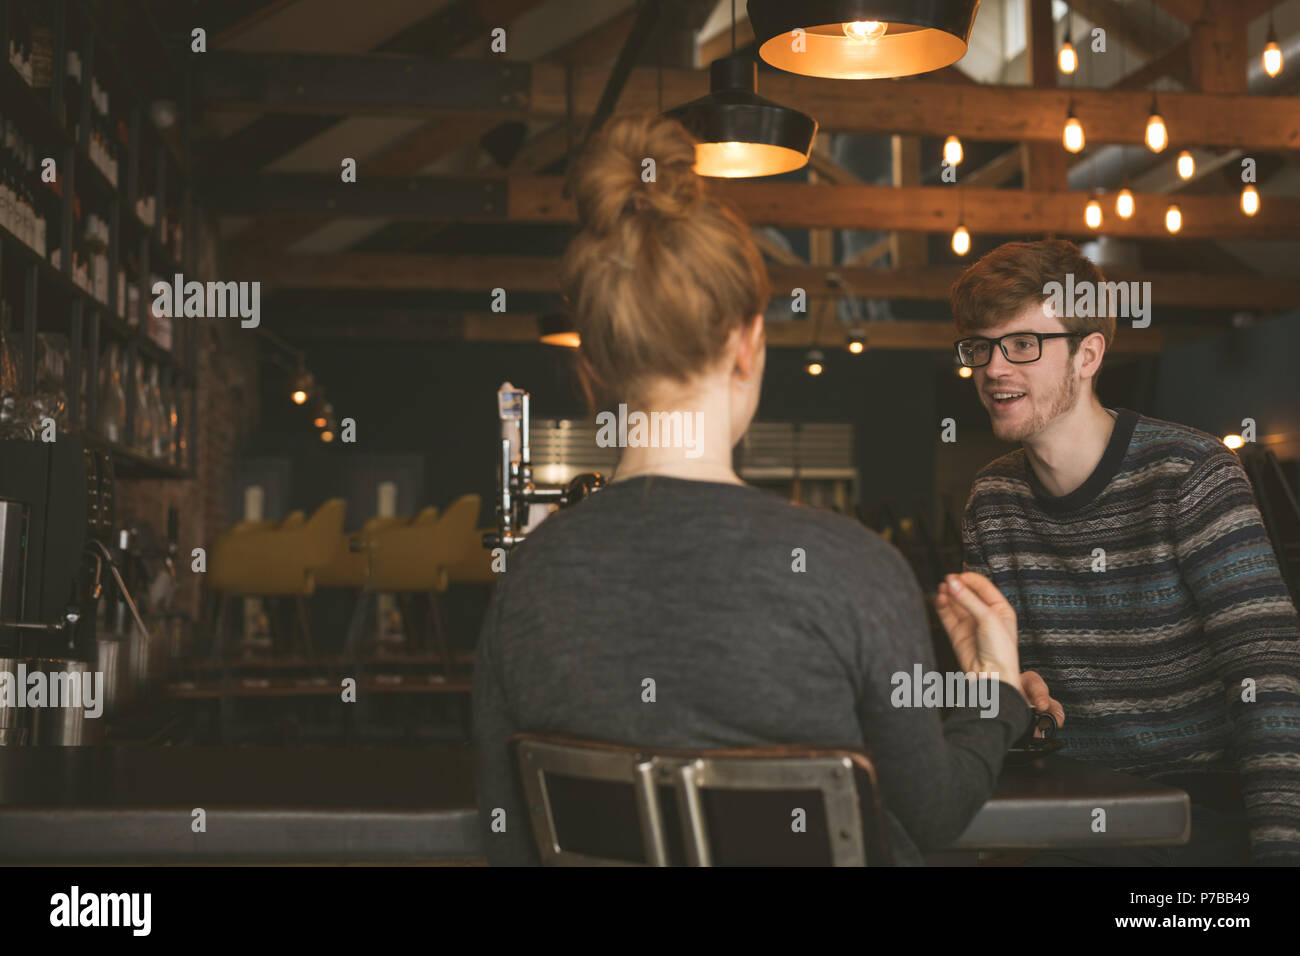 Couple talking to each other at bar counter - Stock Image